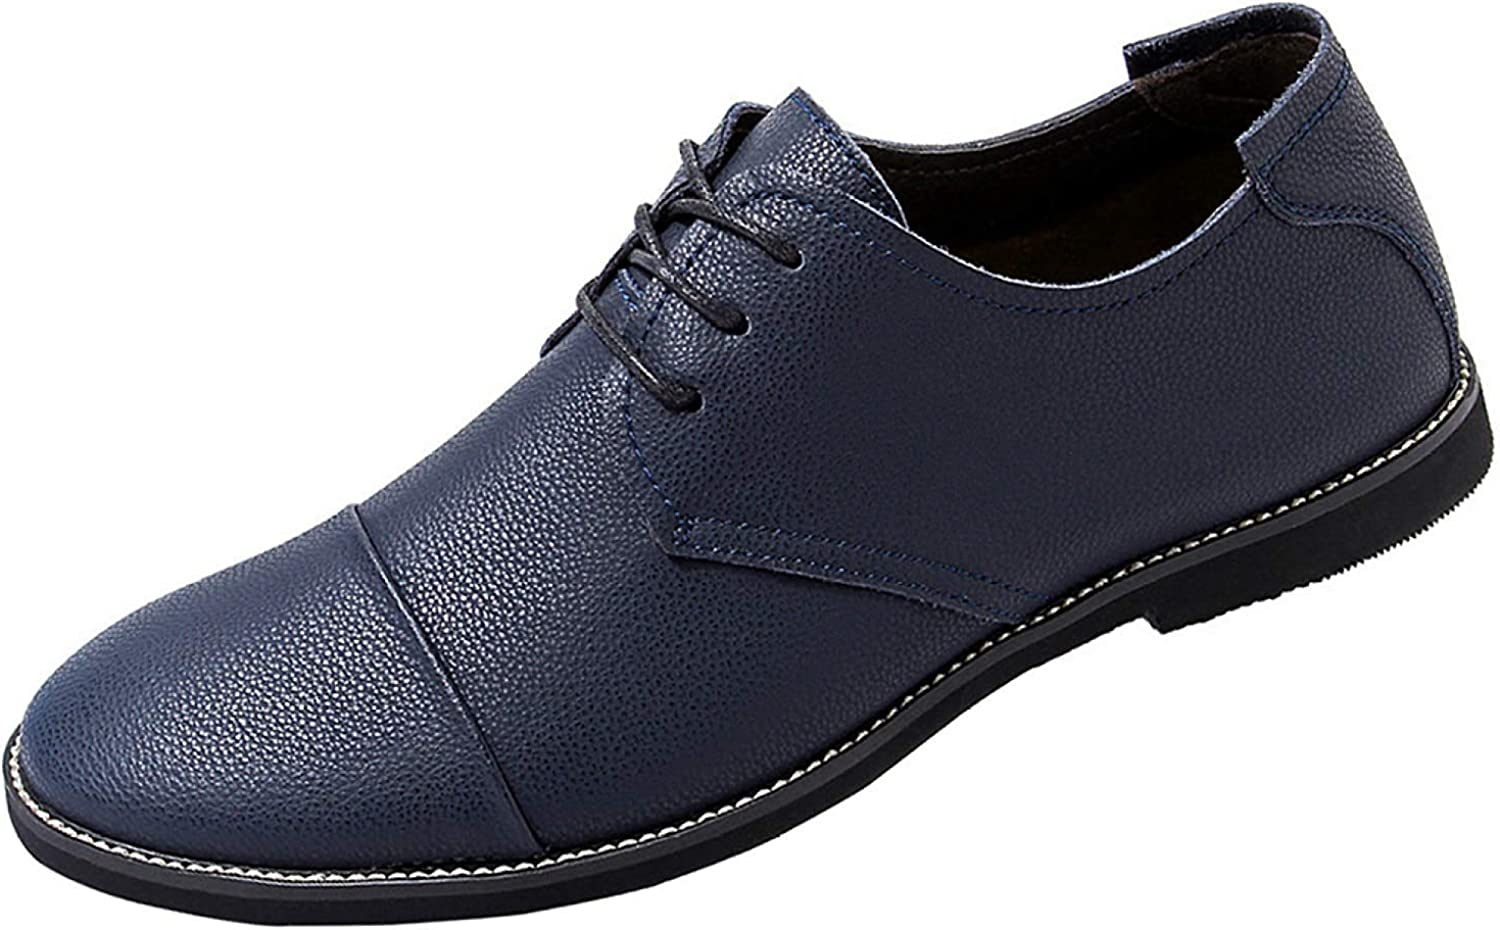 Hhgold Men's shoes From Lace Derby shoes Are Stylish And Comfortable (color   bluee, Size   43EU)